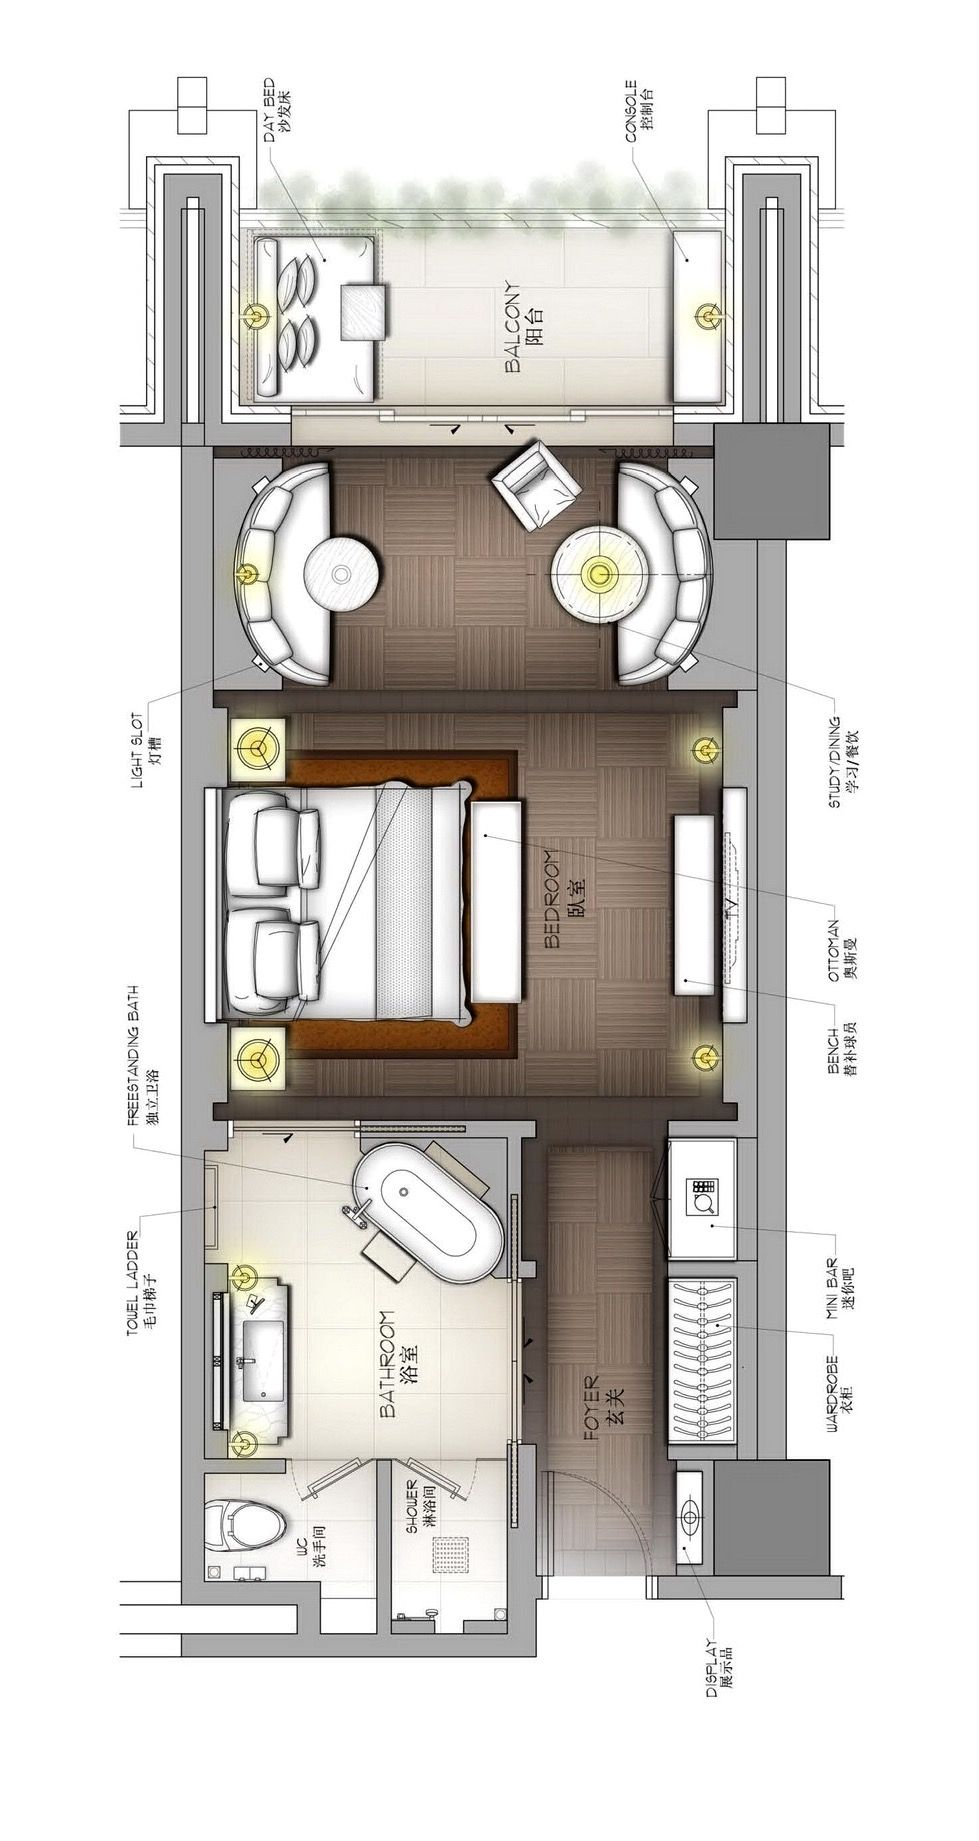 update  Hilton Dali Resort   Spa   Space Planing Layout   Pinterest      update  Hilton Dali Resort   Spa